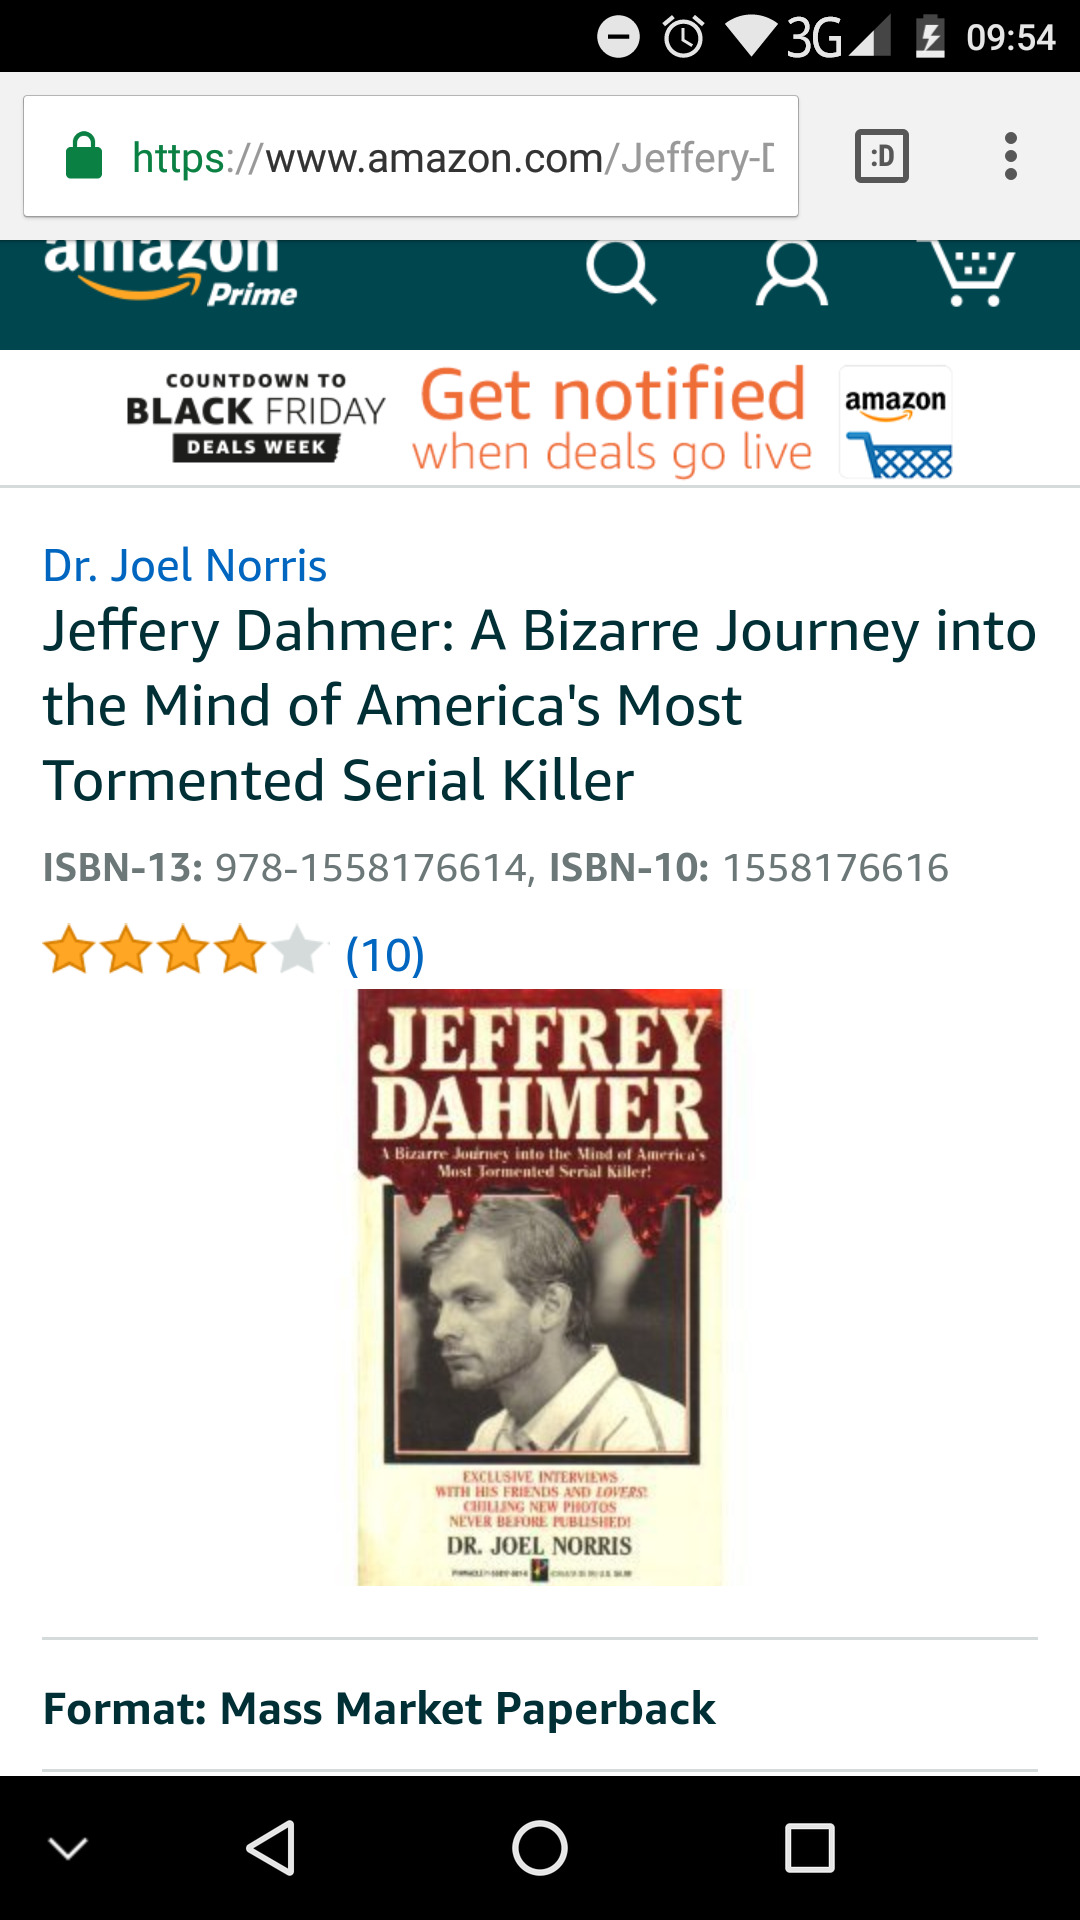 irishcreamandhalcion: